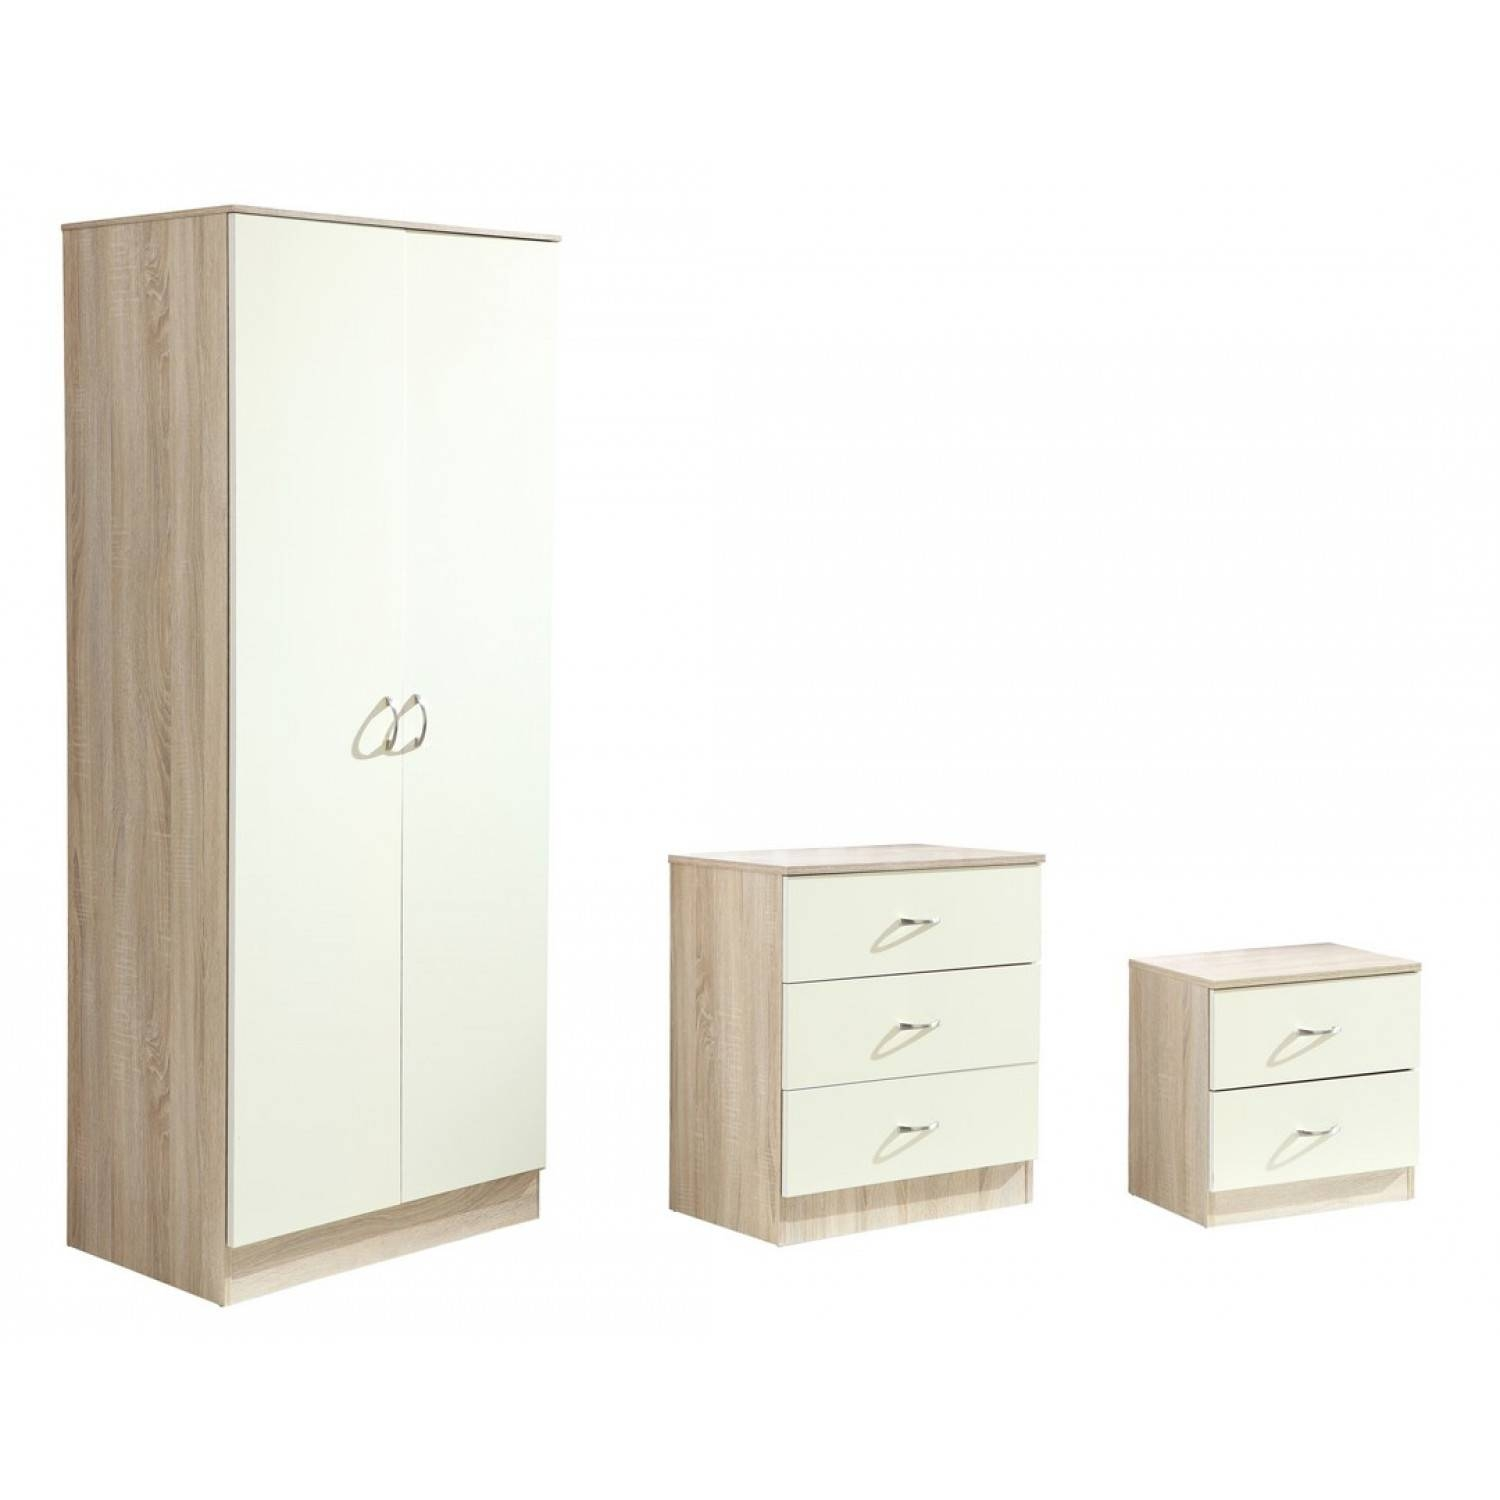 High Gloss Bedroom Trio Set - Two Door Wardrobe + Two Drawer with regard to Cream Gloss Wardrobes (Image 9 of 15)